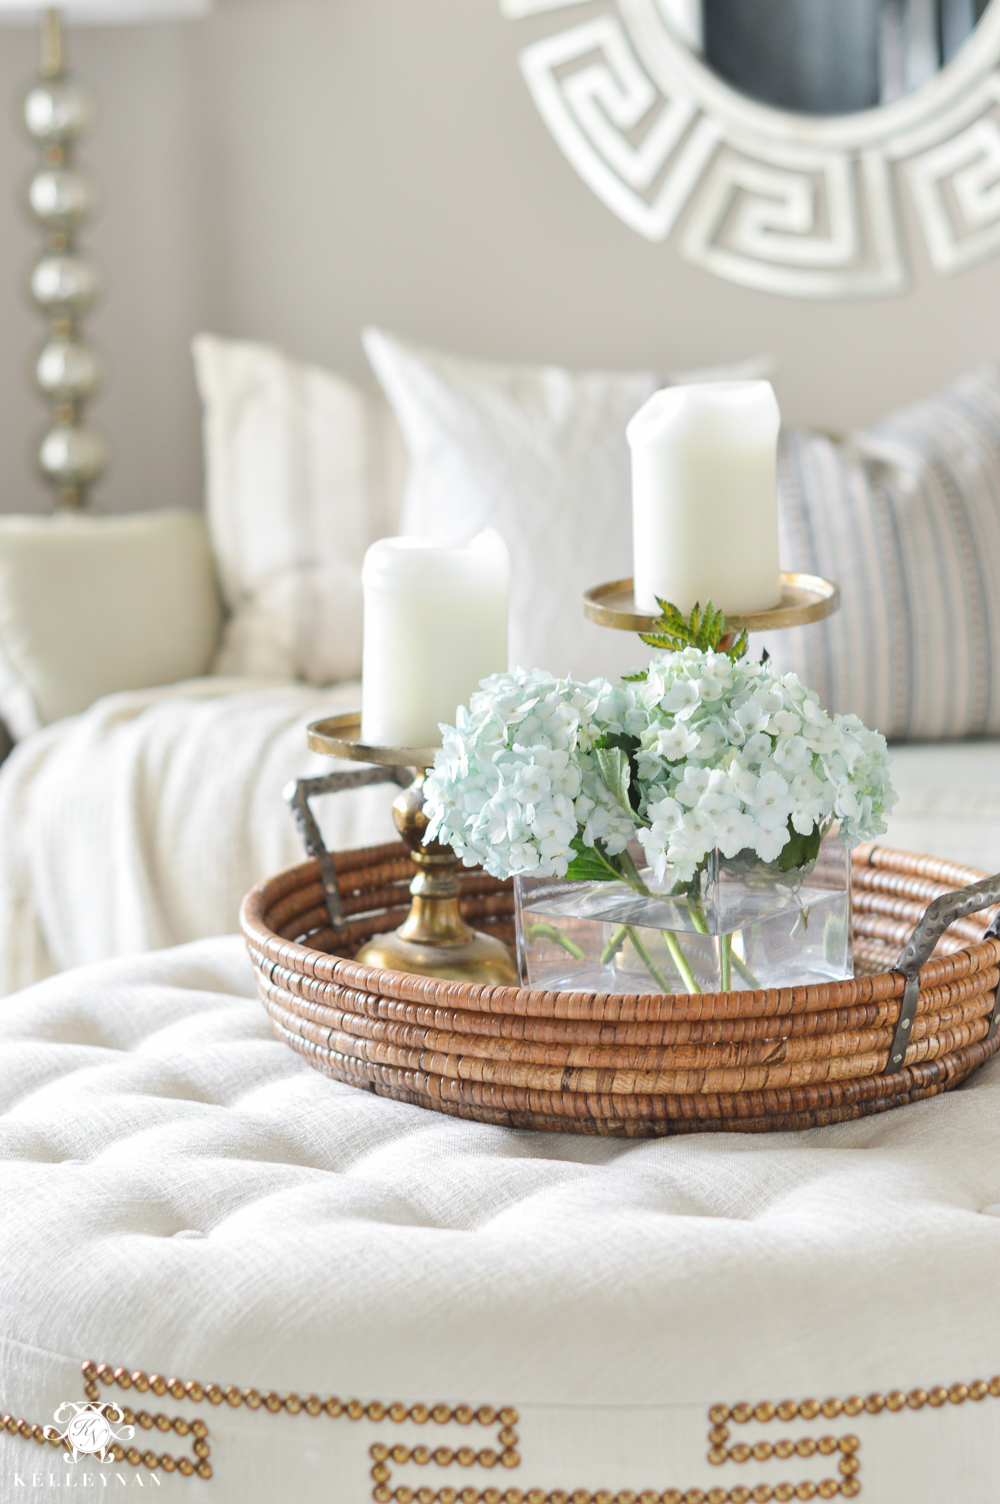 Shades of Summer Home Tour with Neutrals and Naturals- tufted greek key ottoman in formal living room